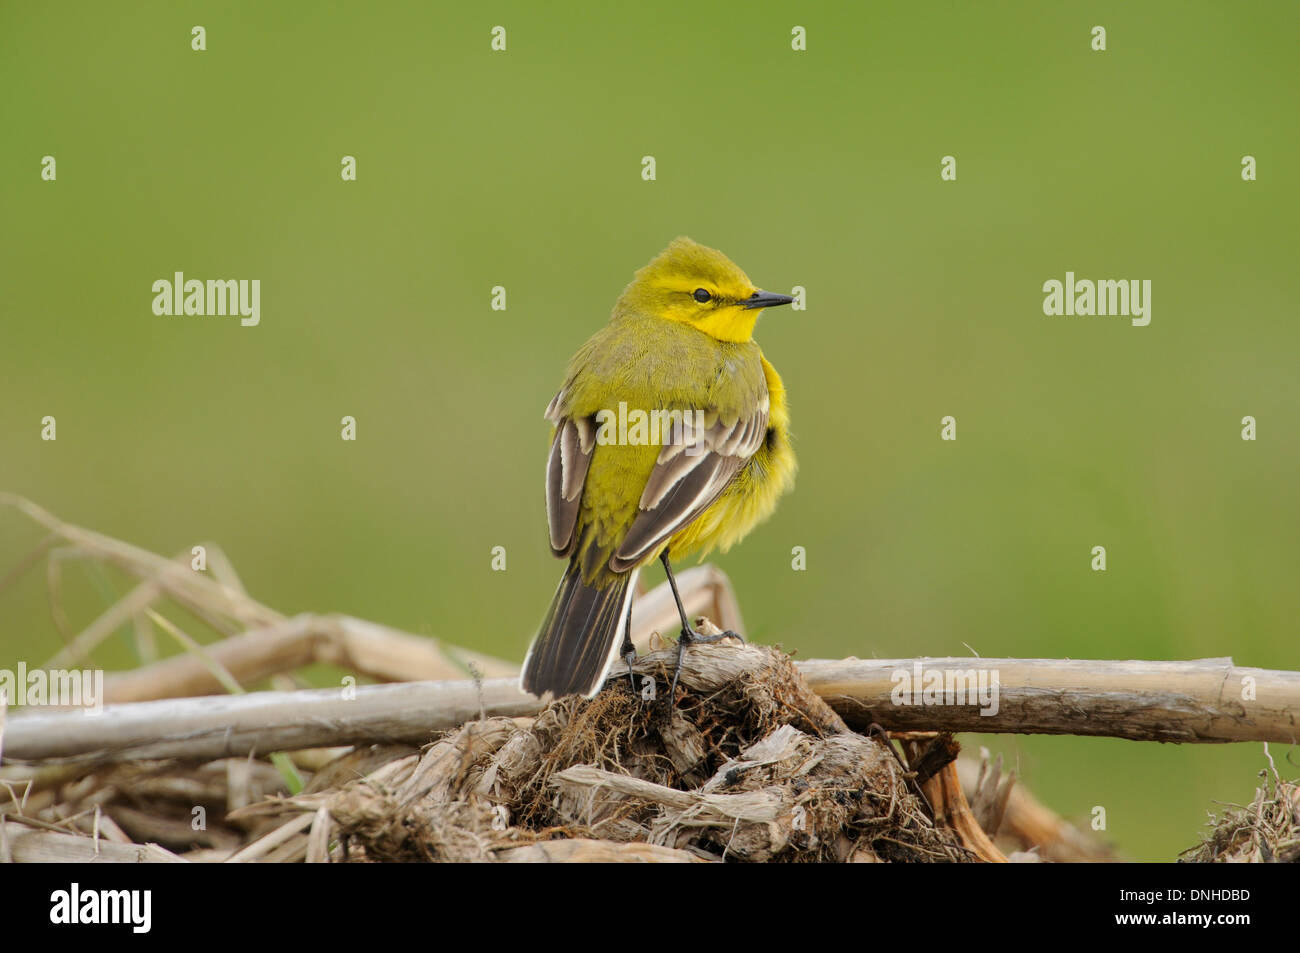 Yellow wagtail (Motacilla flava) perched on vegetation. - Stock Image